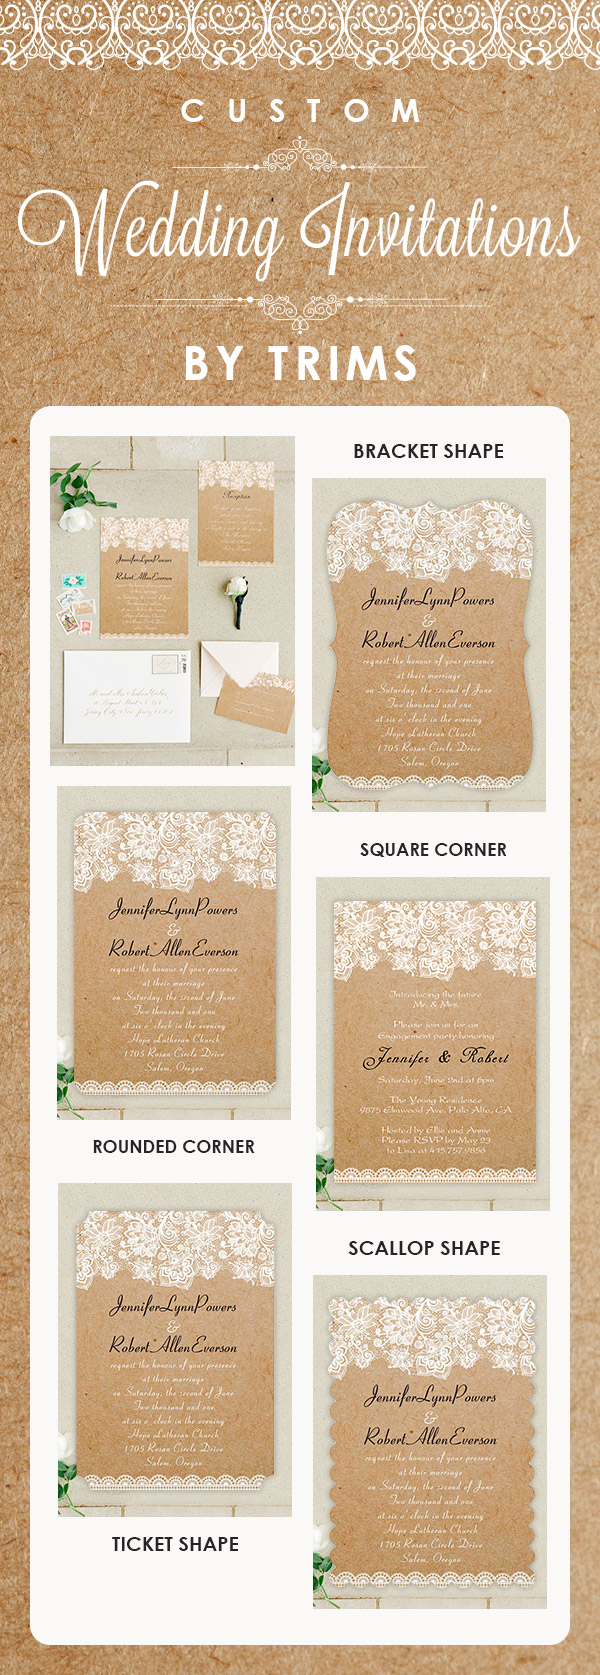 Custom wedding invitations by trims